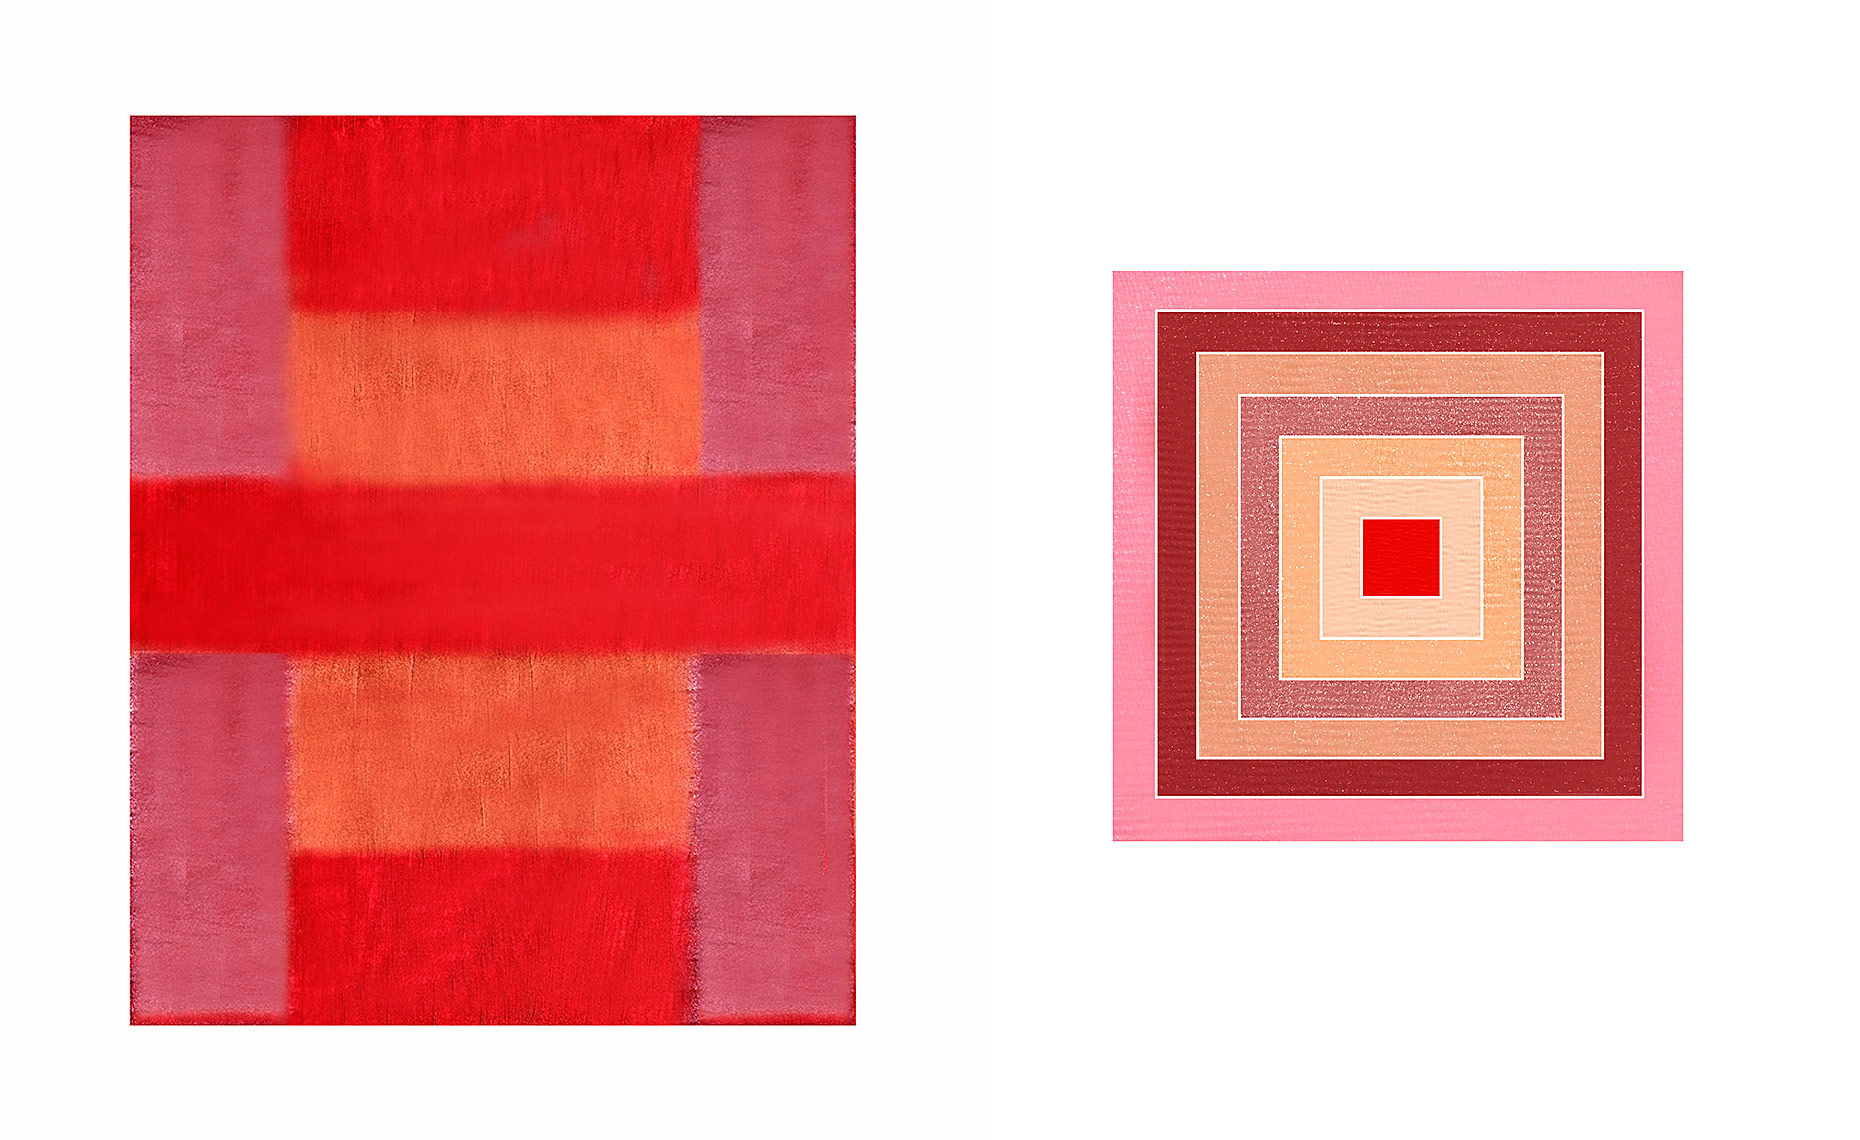 Estee Lauder lipstick after Ad Reinhardt, NARS blush after Frank Stella